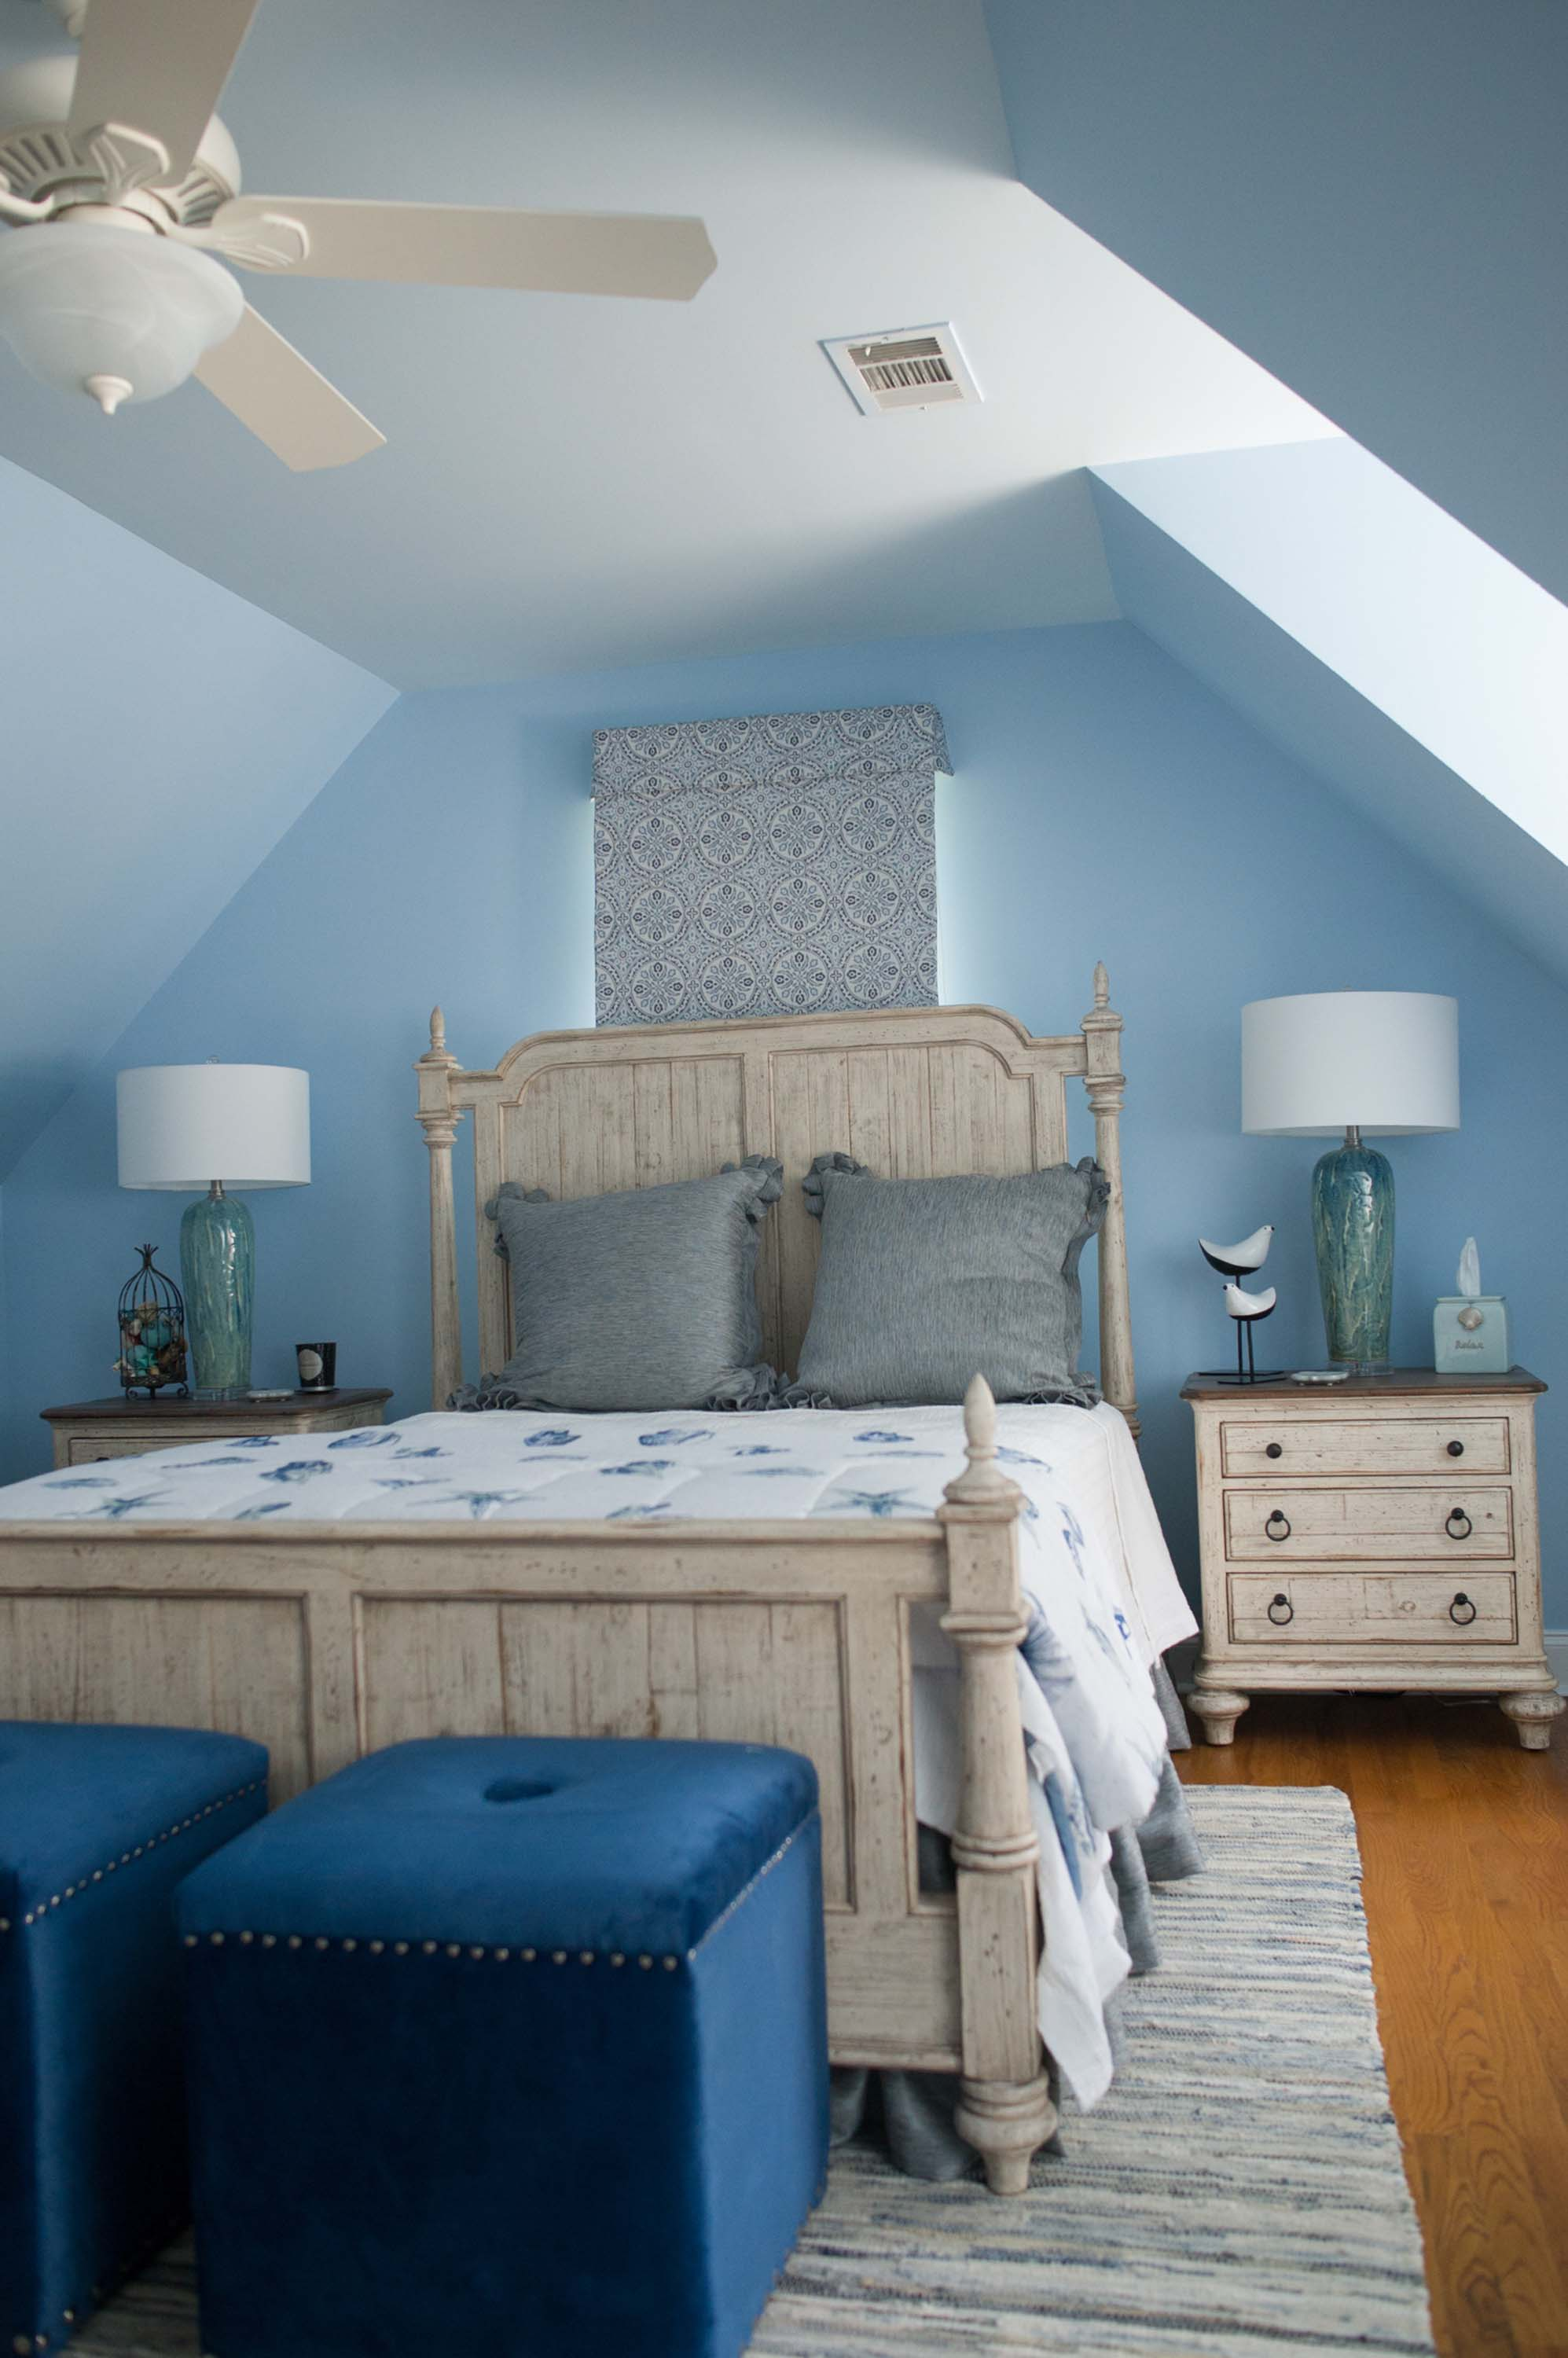 Custom Bedding with Wooden Furniture and Lamps